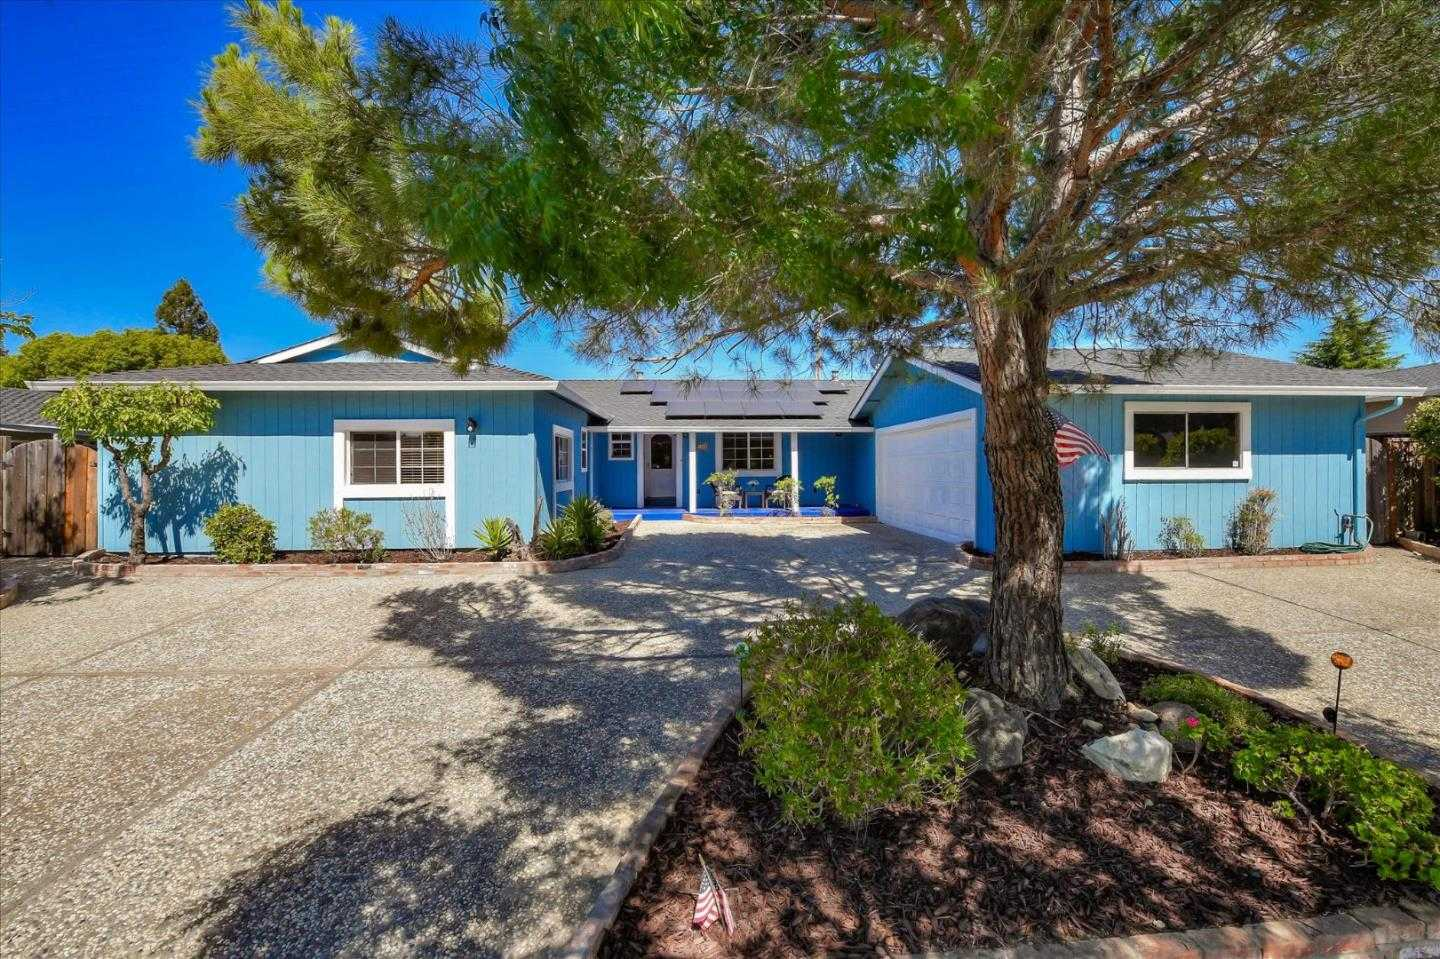 $1,875,000 - 4Br/2Ba -  for Sale in Campbell